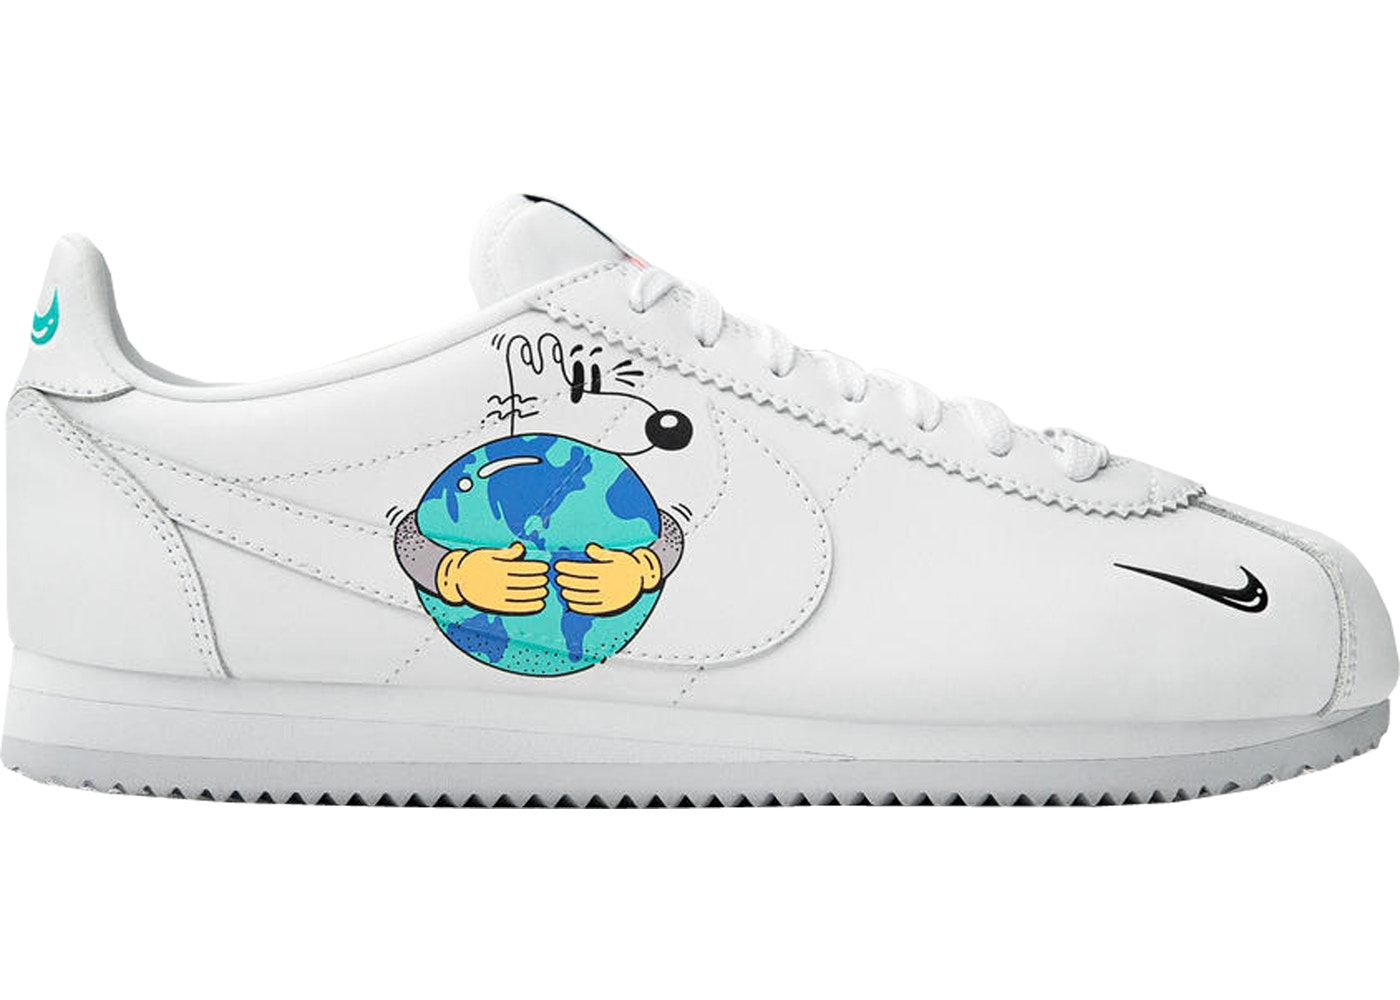 official photos 3612f 09c83 Nike Cortez Flyleather Steve Harrington Earth Day (2019) - CI5548-100